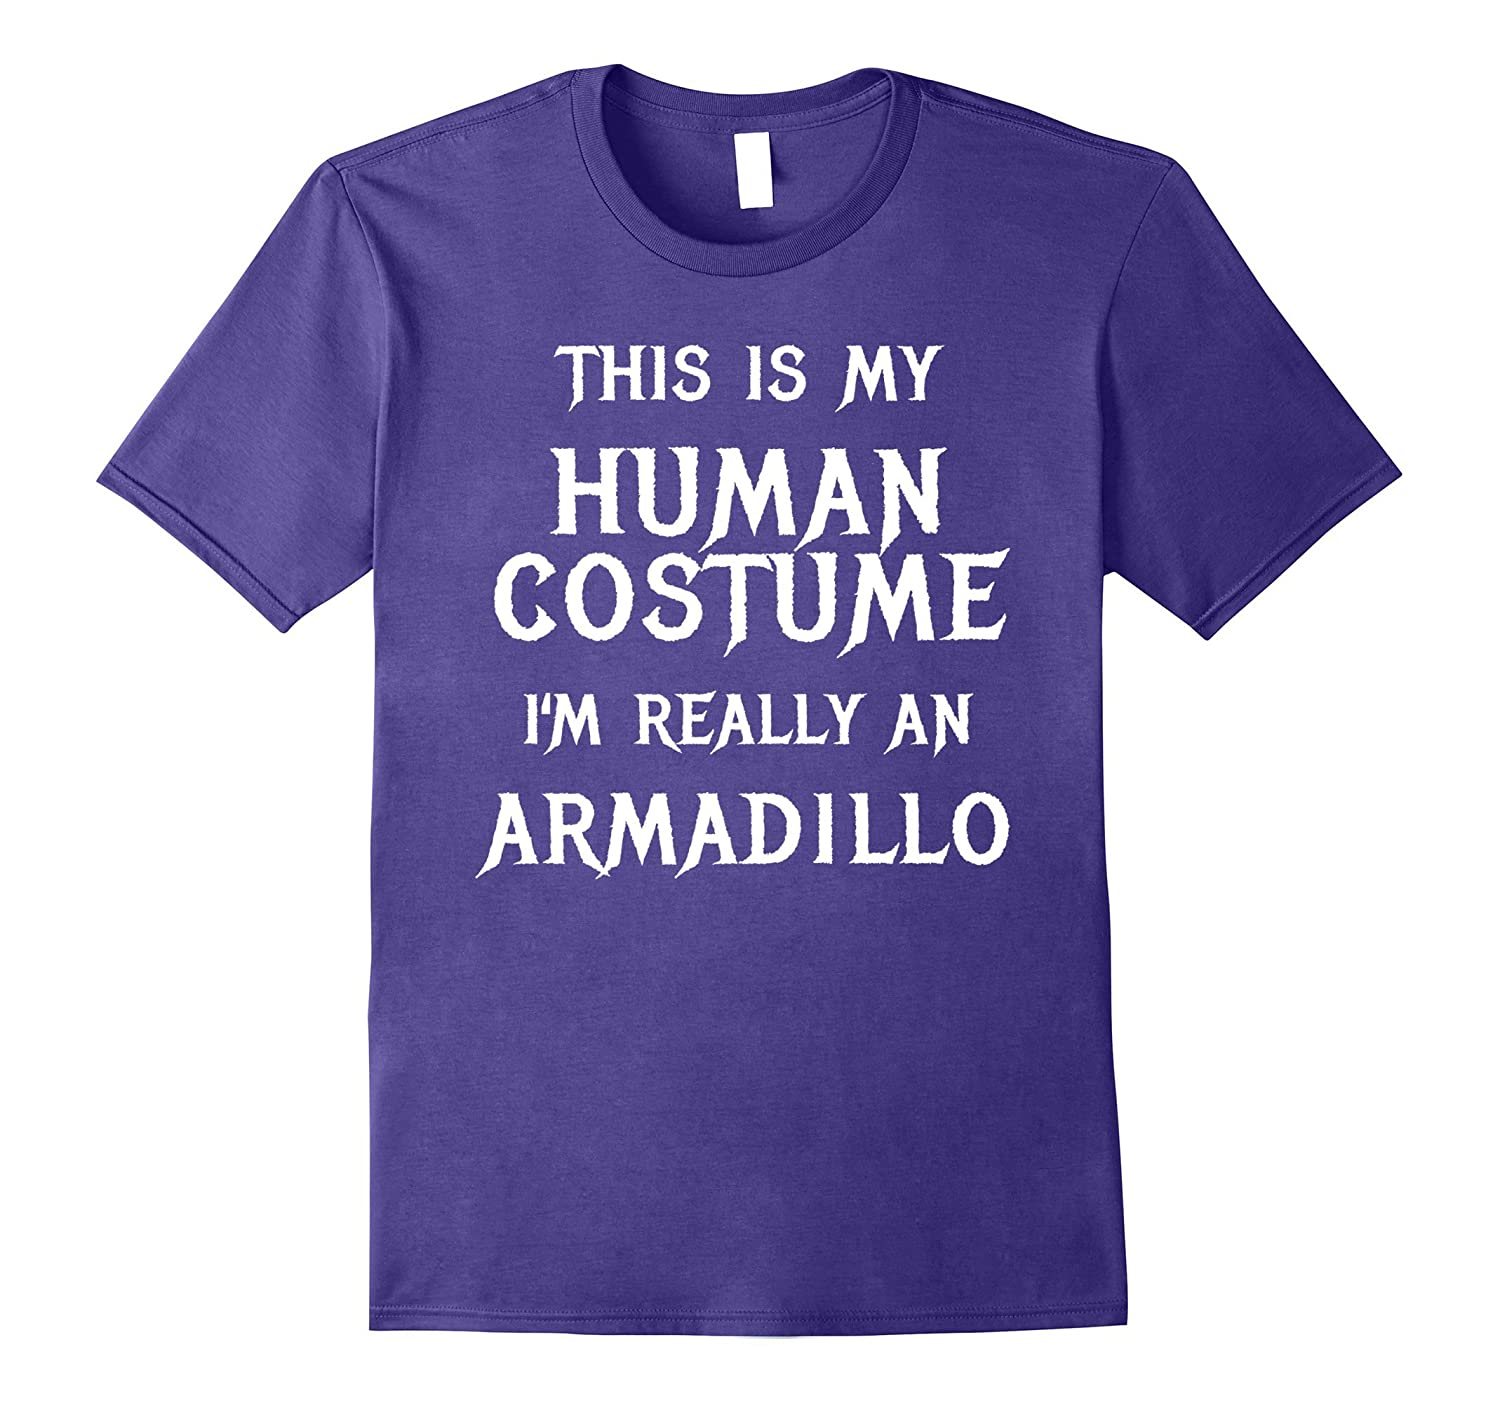 Armadillo Halloween Costume Shirt Easy Funny for Kids Adults-T-Shirt